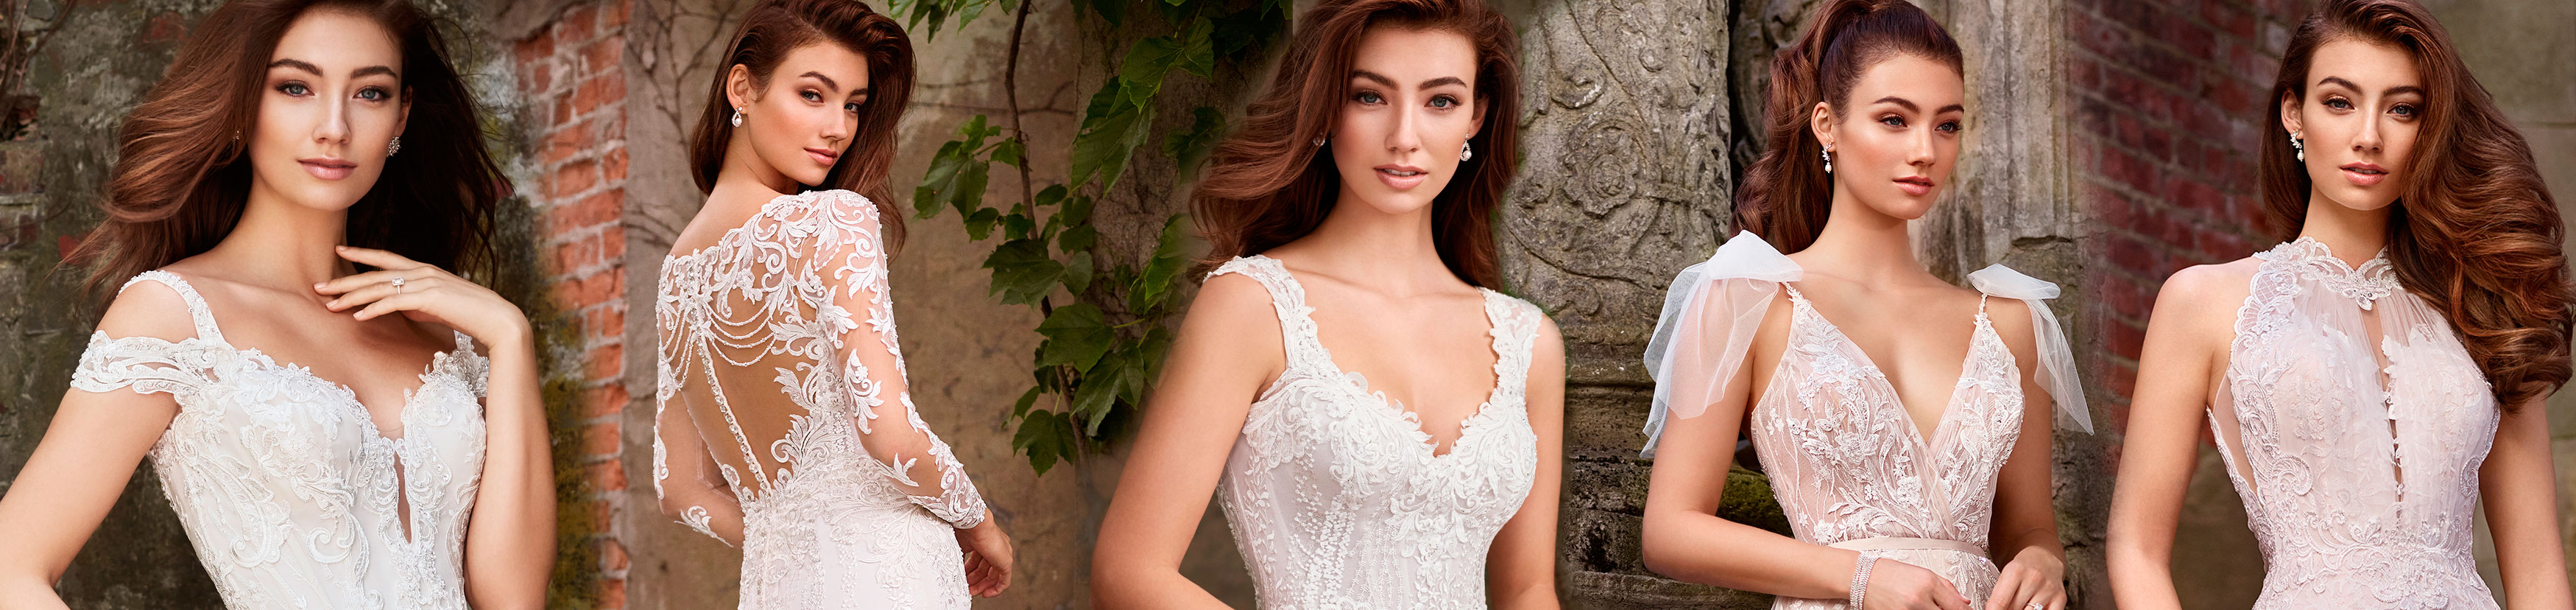 MON CHERI Bridal gowns from Cheshire Brides Frodsham